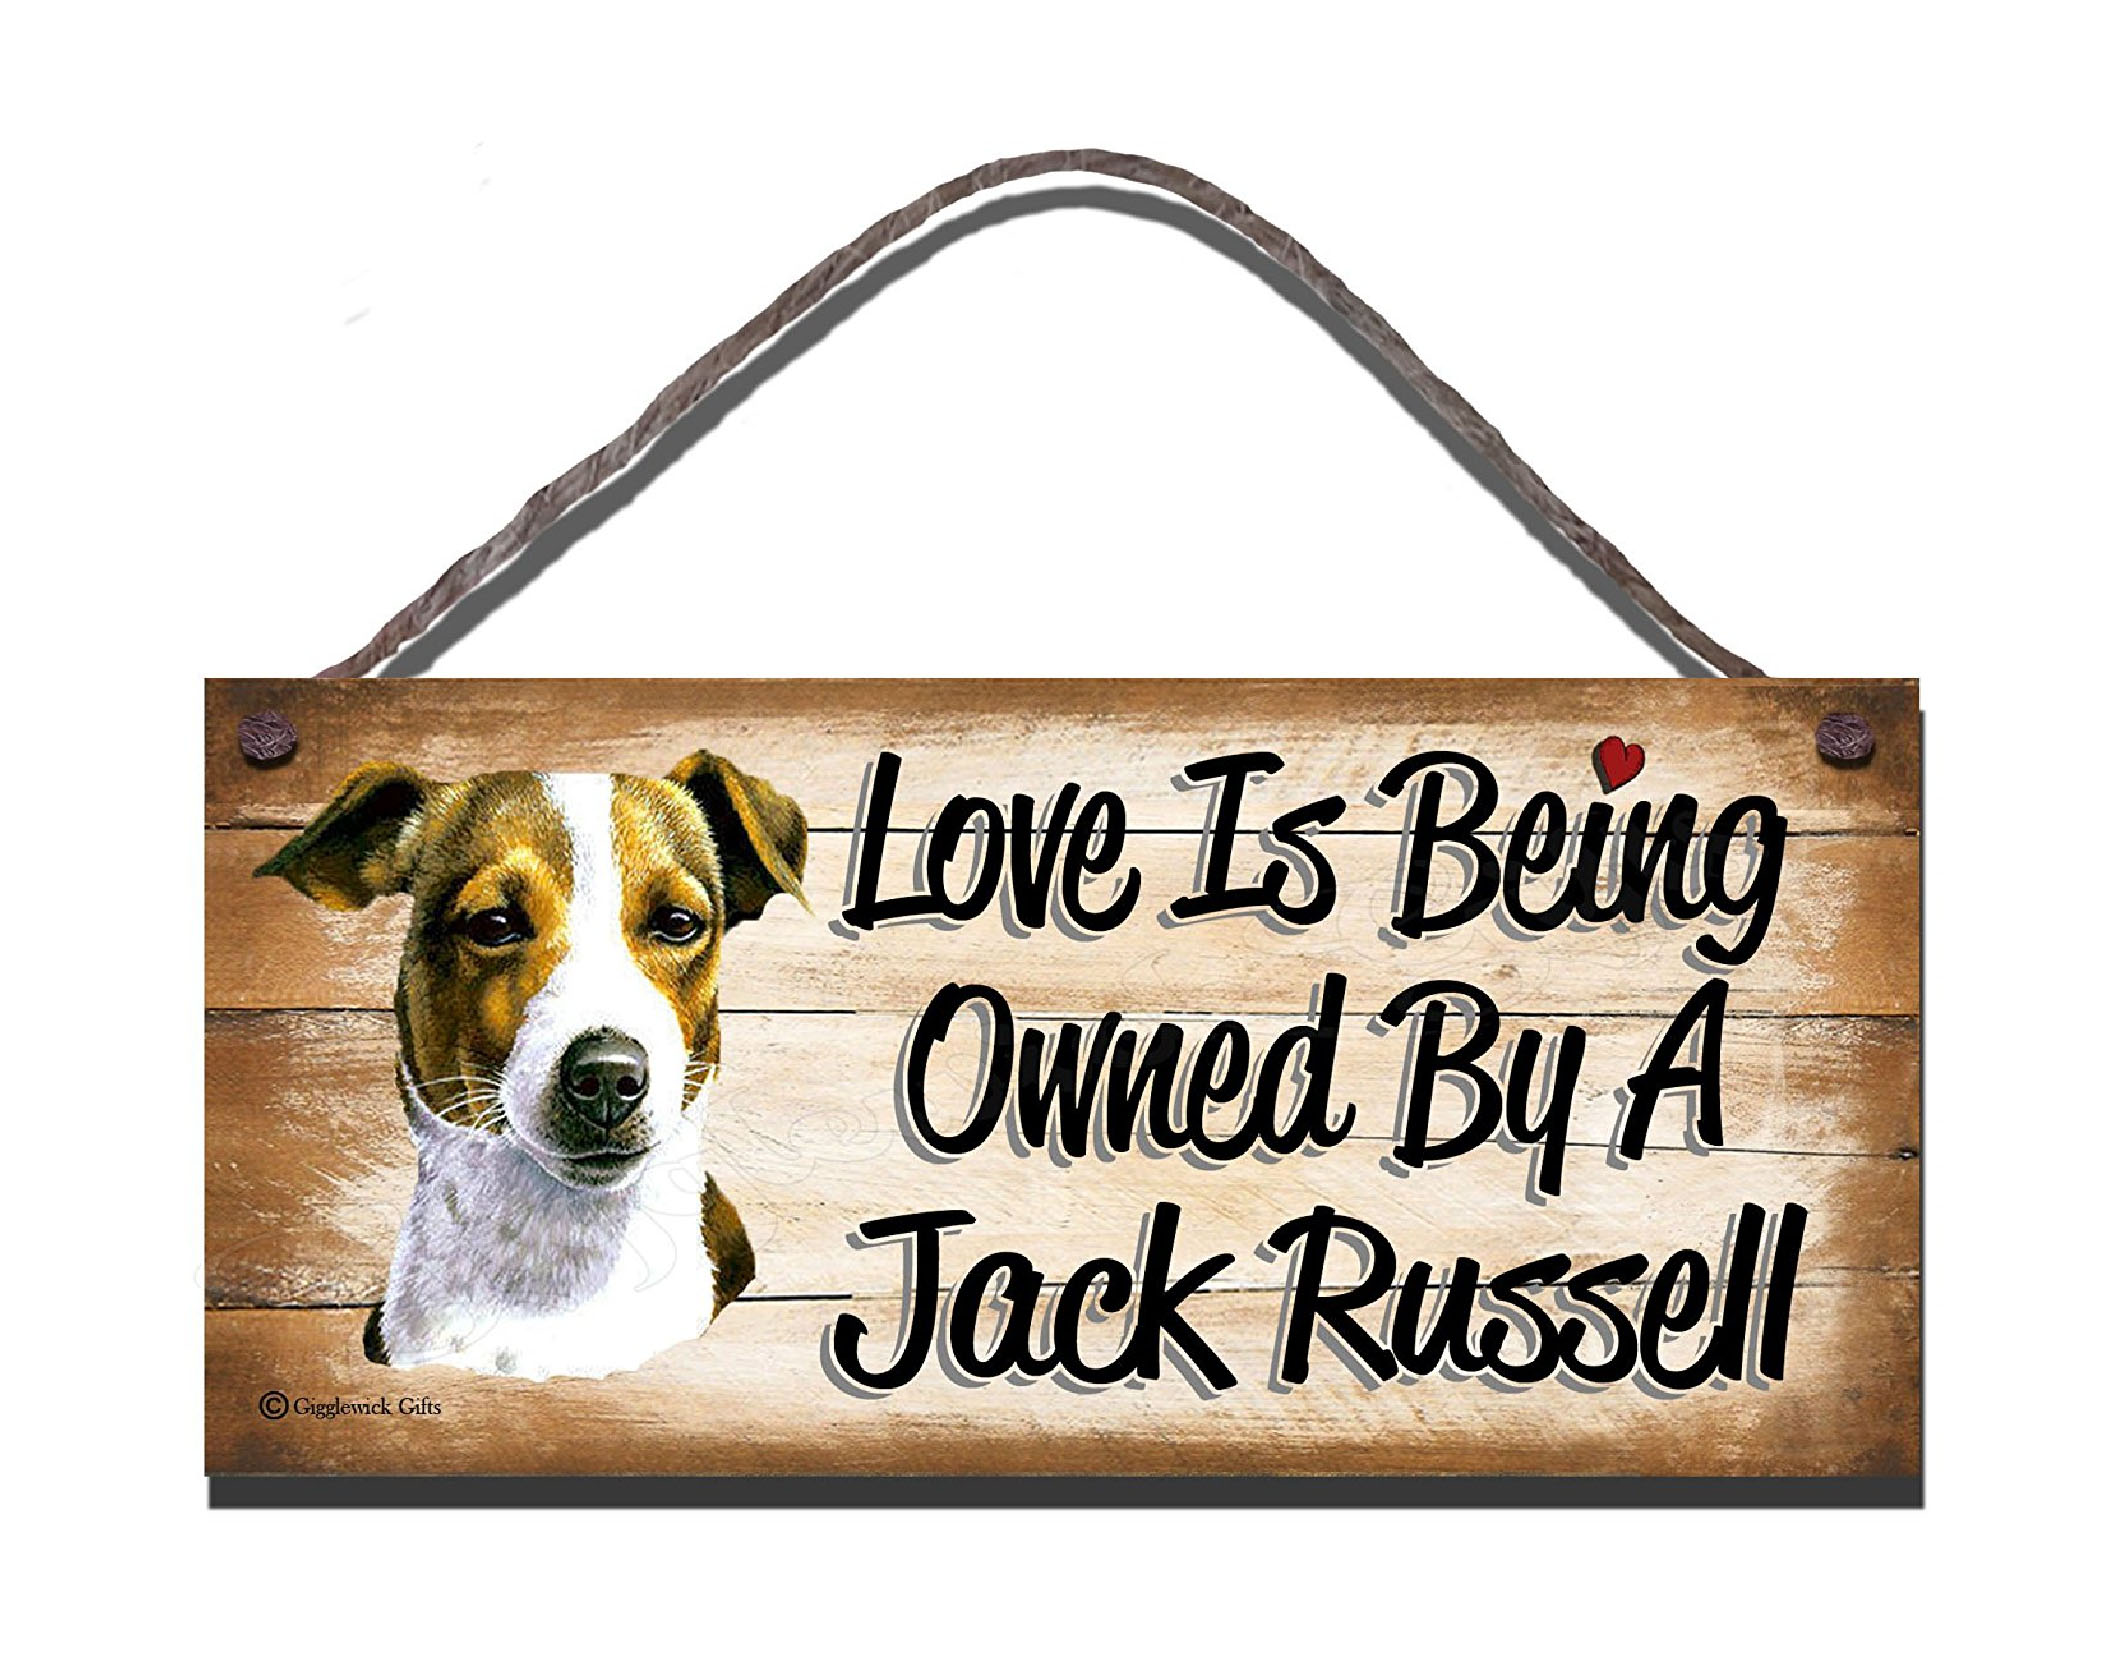 JACK RUSSELL SD9